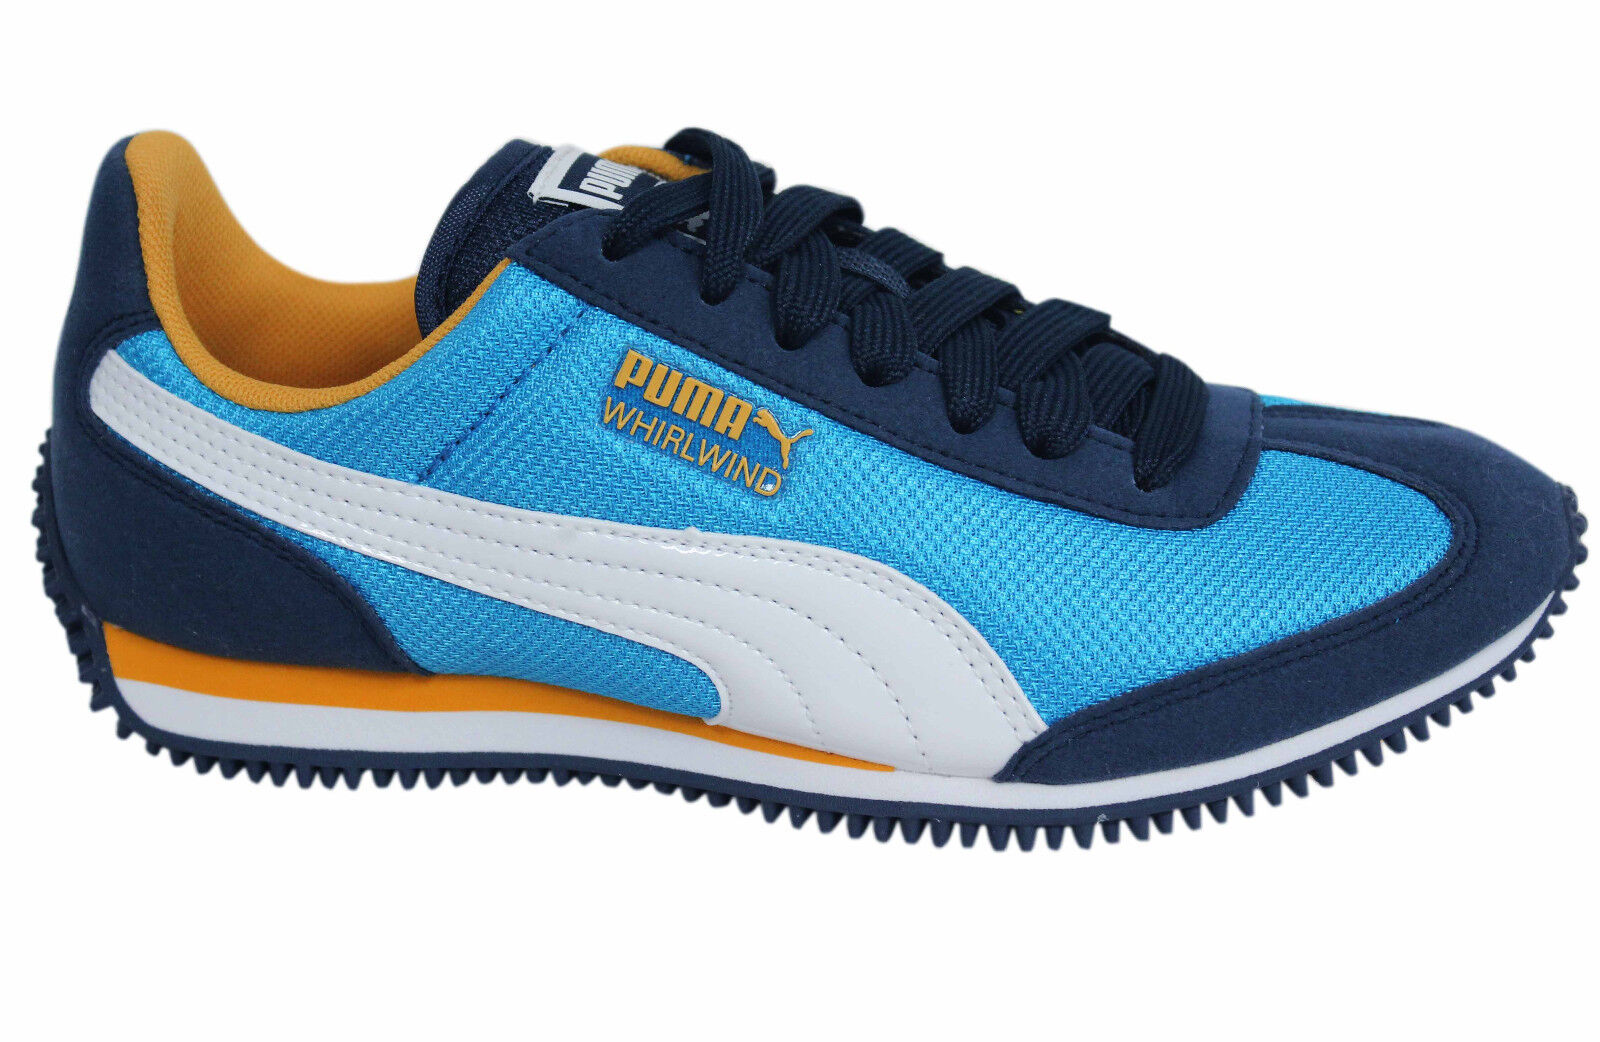 94b9911f832 Puma Whirlwind Mesh Lace Up Textile Synthetic Junior Trainers 357232 ...